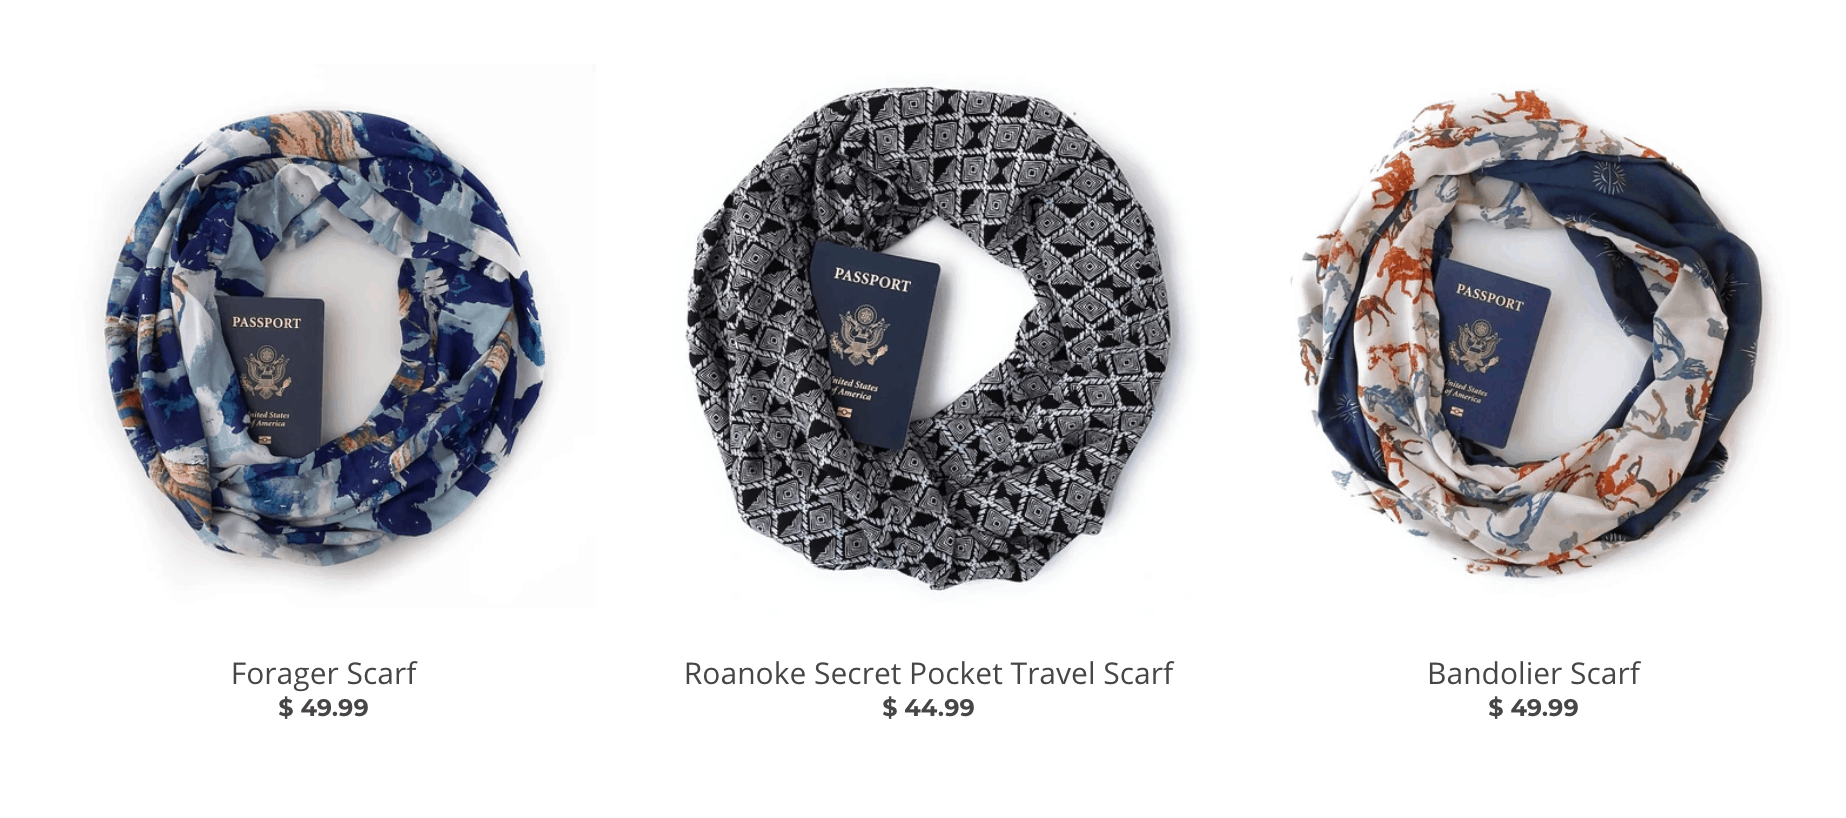 Speakeasy Travel Scarves in a Line